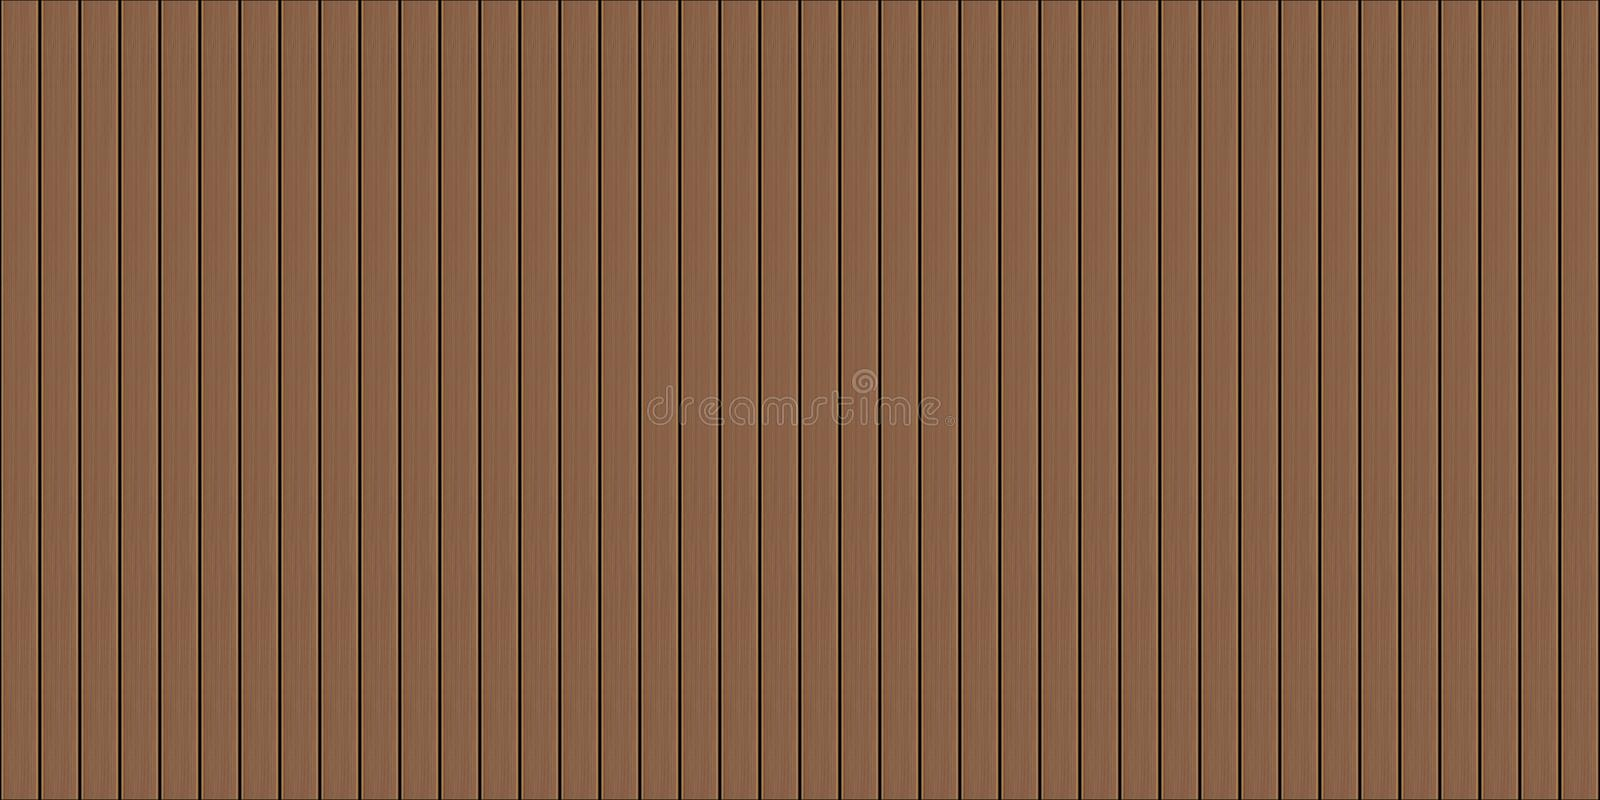 Texture sans couture de decking en bois illustration libre de droits